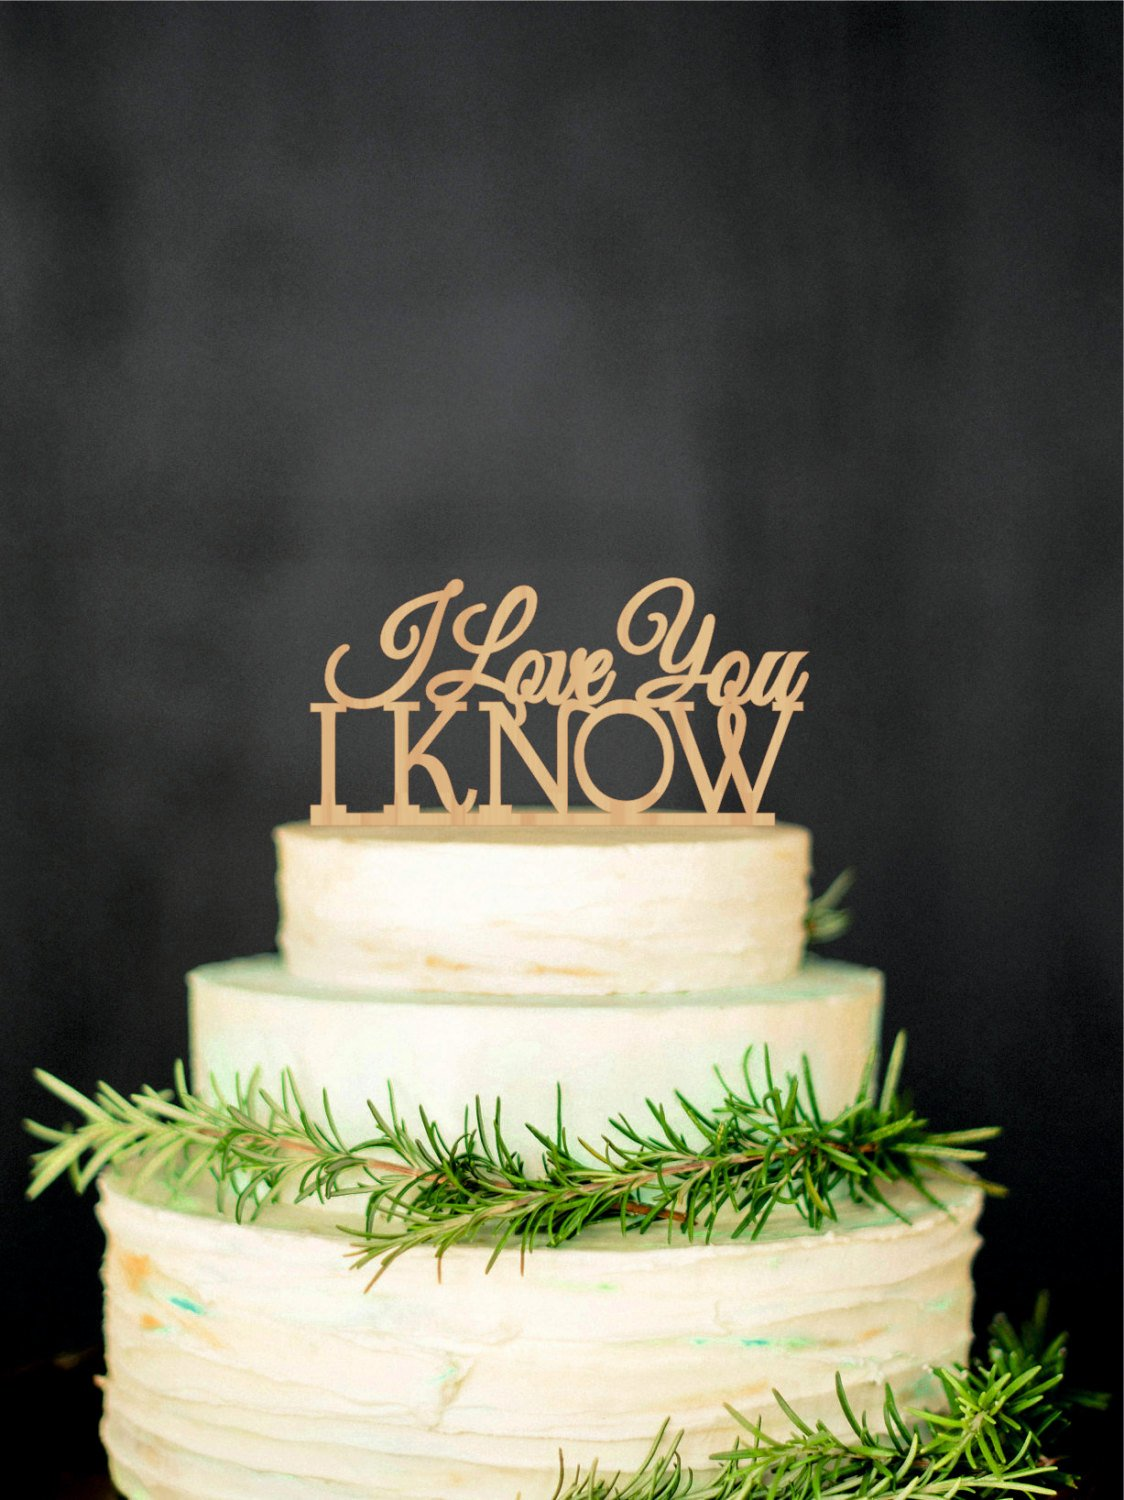 WTA1023 WTA - Star Wars Inspired Cake Topper I Love you I Know Wedding Cake Topper